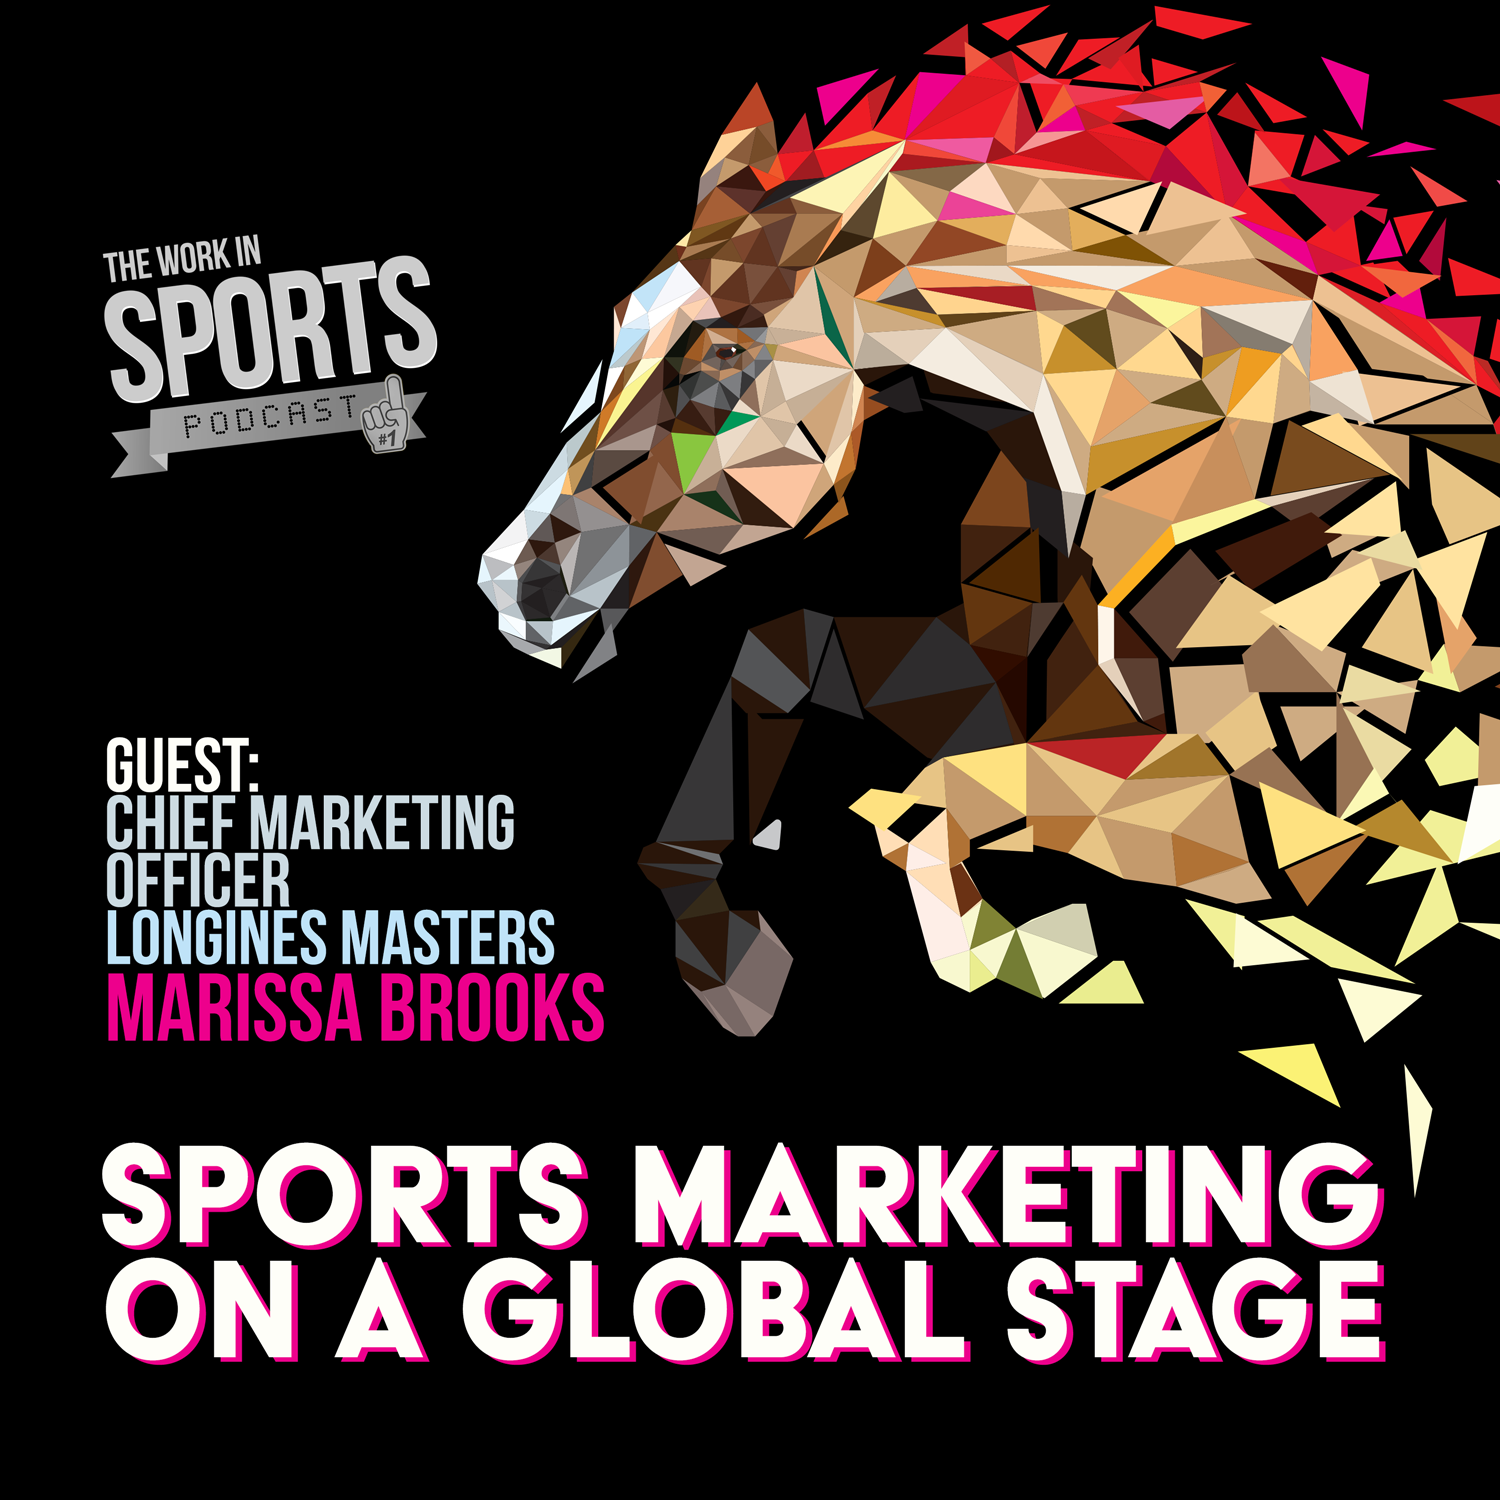 sports marketing on a global stage